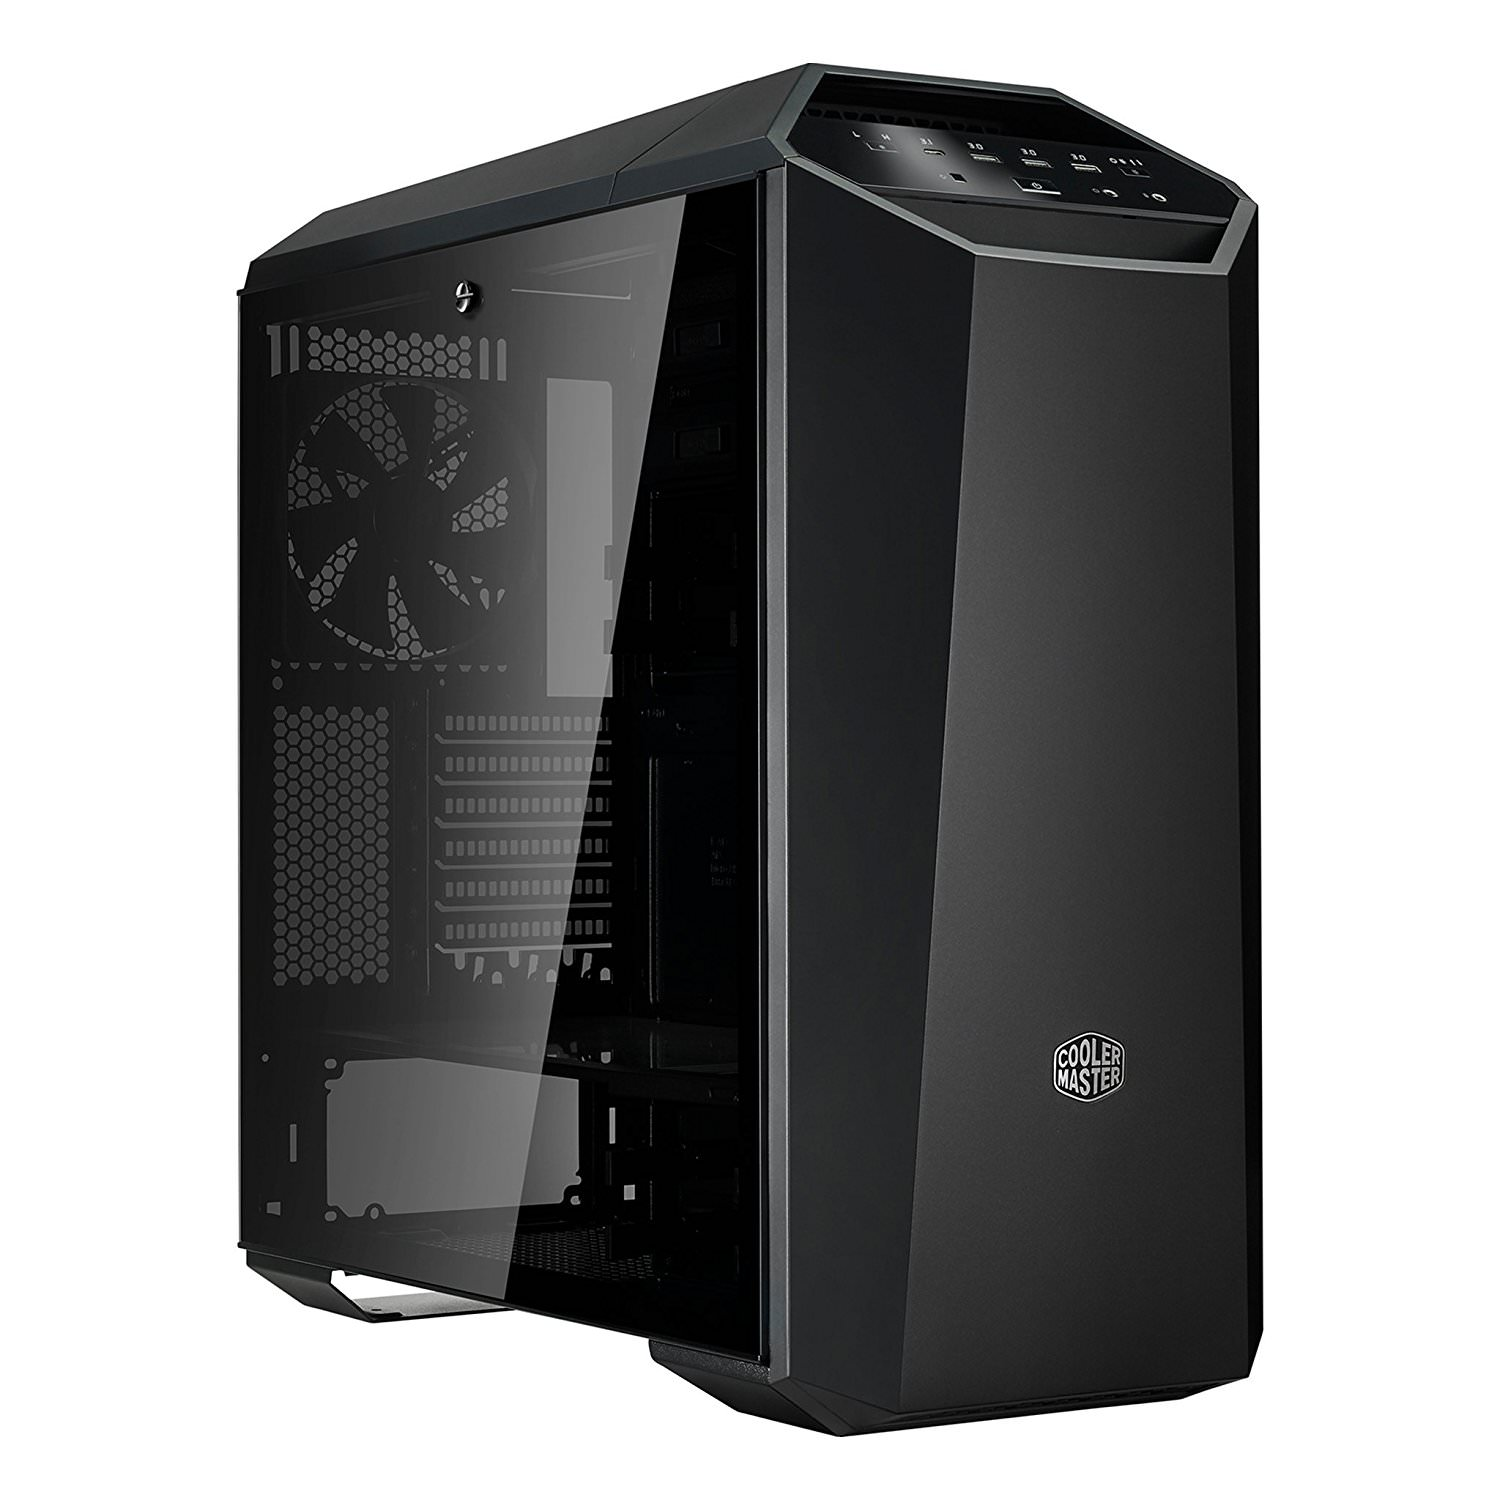 MasterCase Maker 5 Mid-Tower Compuer Case with FreeForm Modular System, Upgraded I/O with 3.0 Type C, Magnetic LED Strip, Magnetic Paneling, Sound Supression, and Cooling Bracket (MCM-M500M-KG5N-S00)